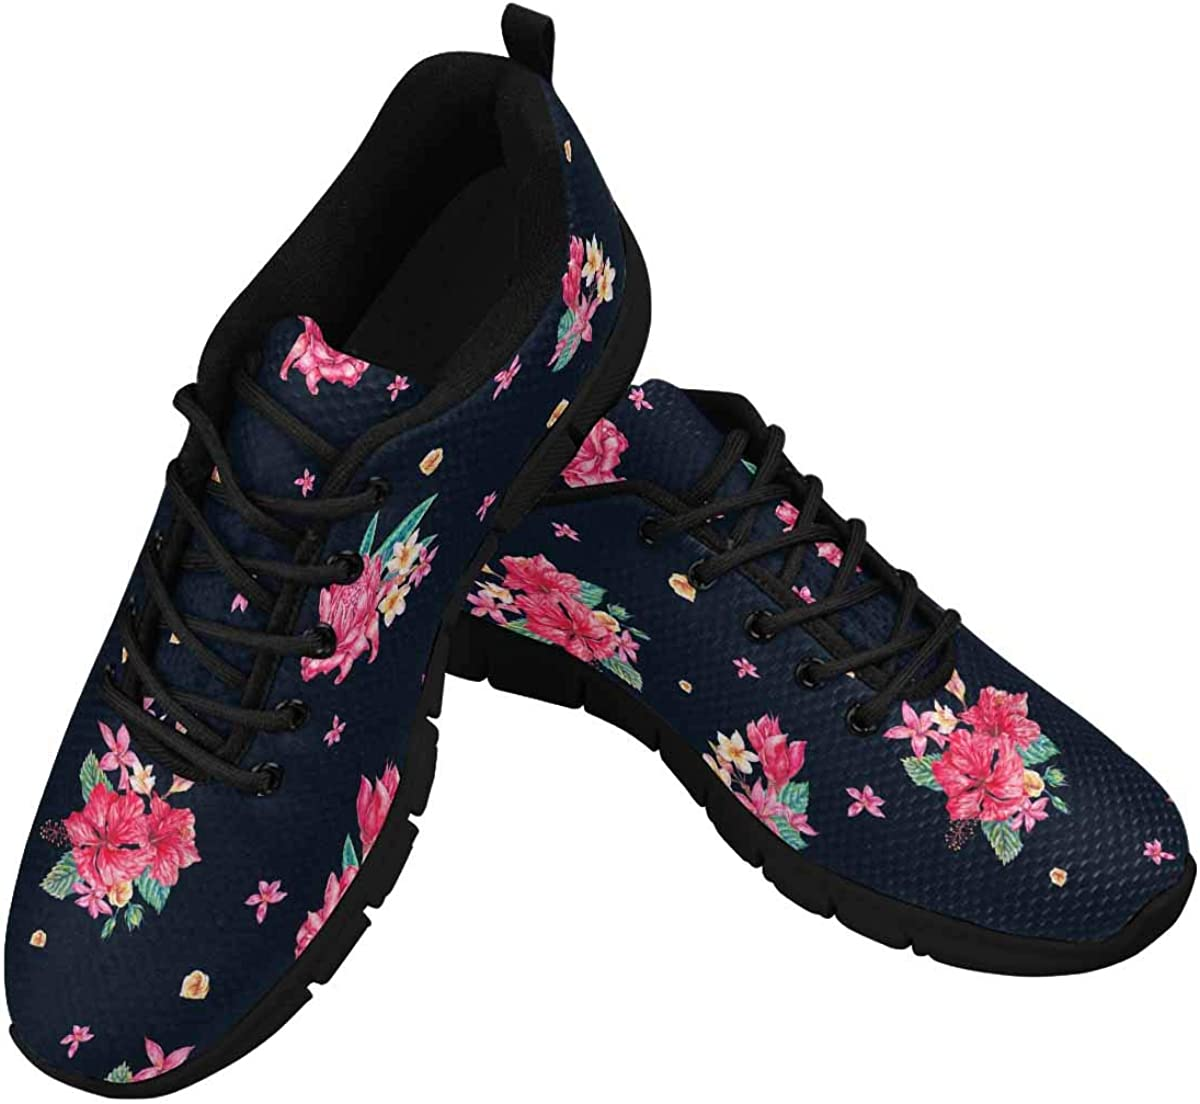 INTERESTPRINT Vintage Tropical Floral Pattern Lightweight Mesh Breathable Sneakers for Women